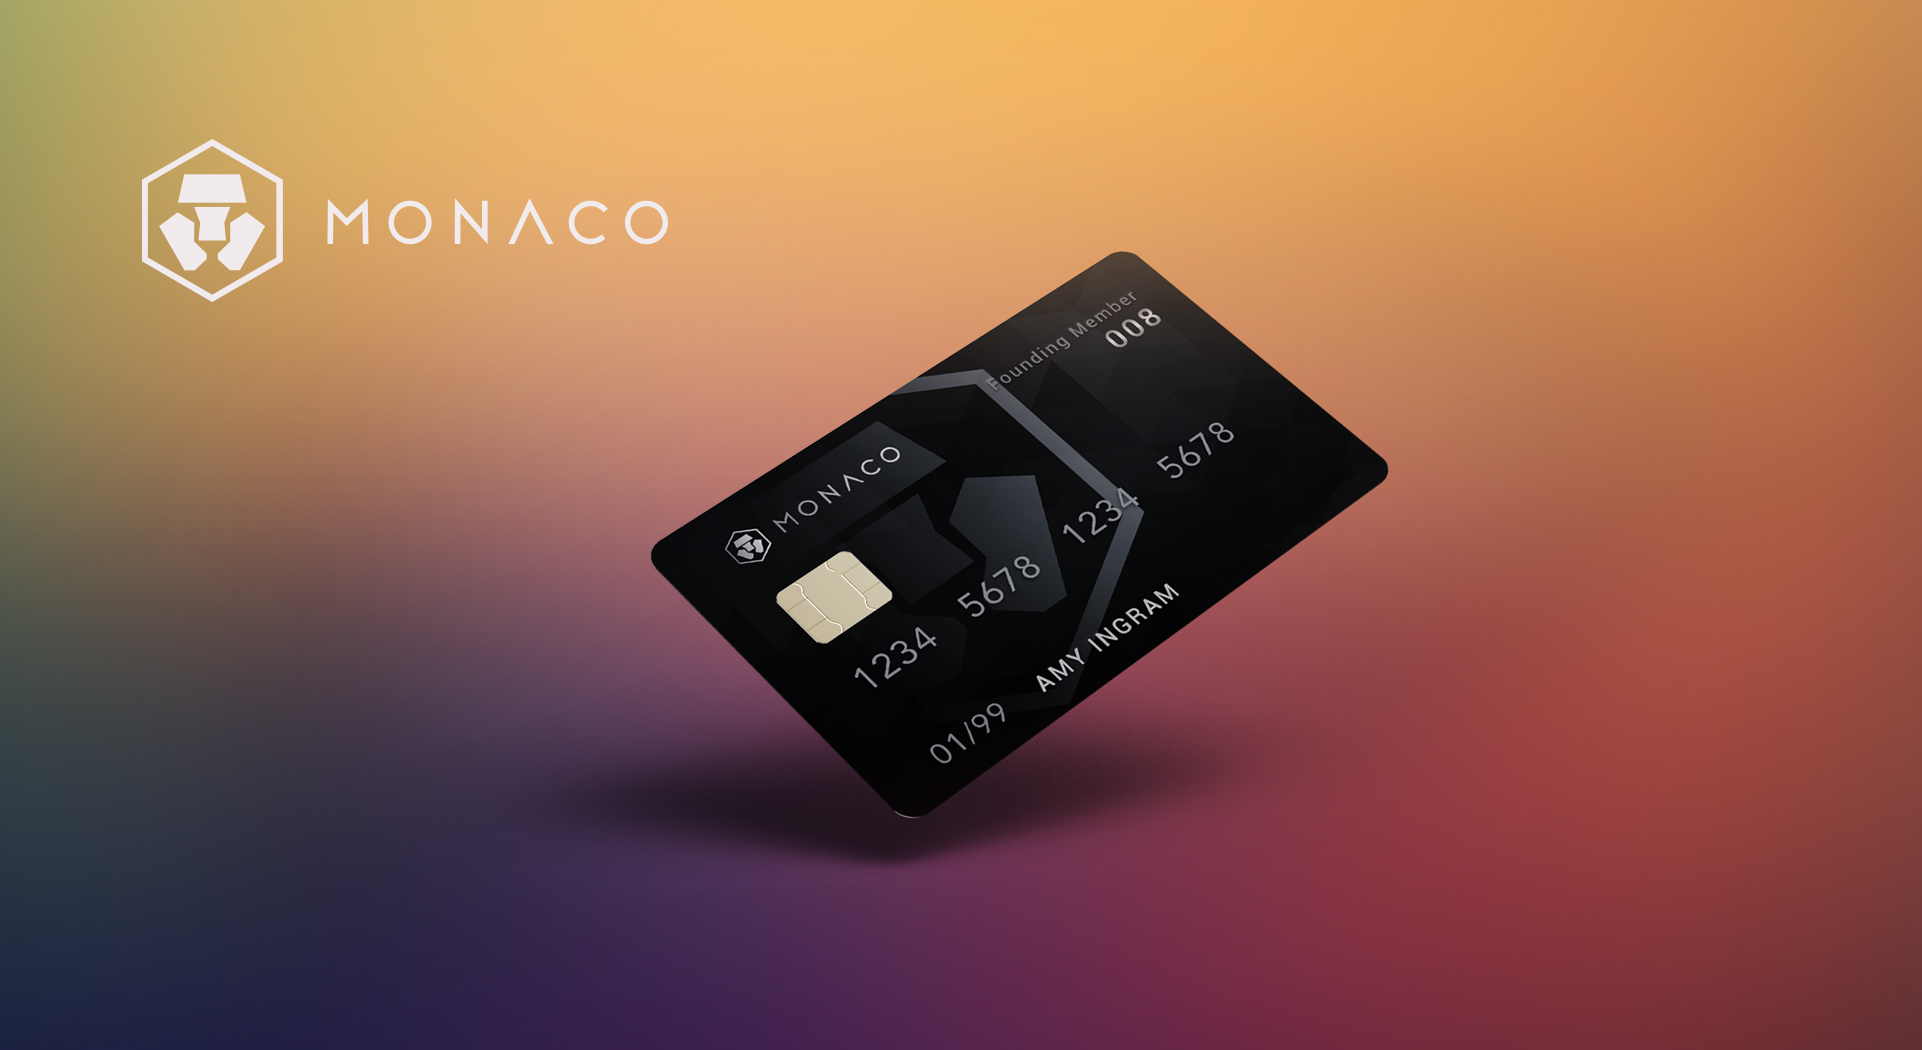 Monaco will be the absolute best option once it releases, so I recommend reserving yours now. It is FREE, you will even get a $10 credit if you sign up now.